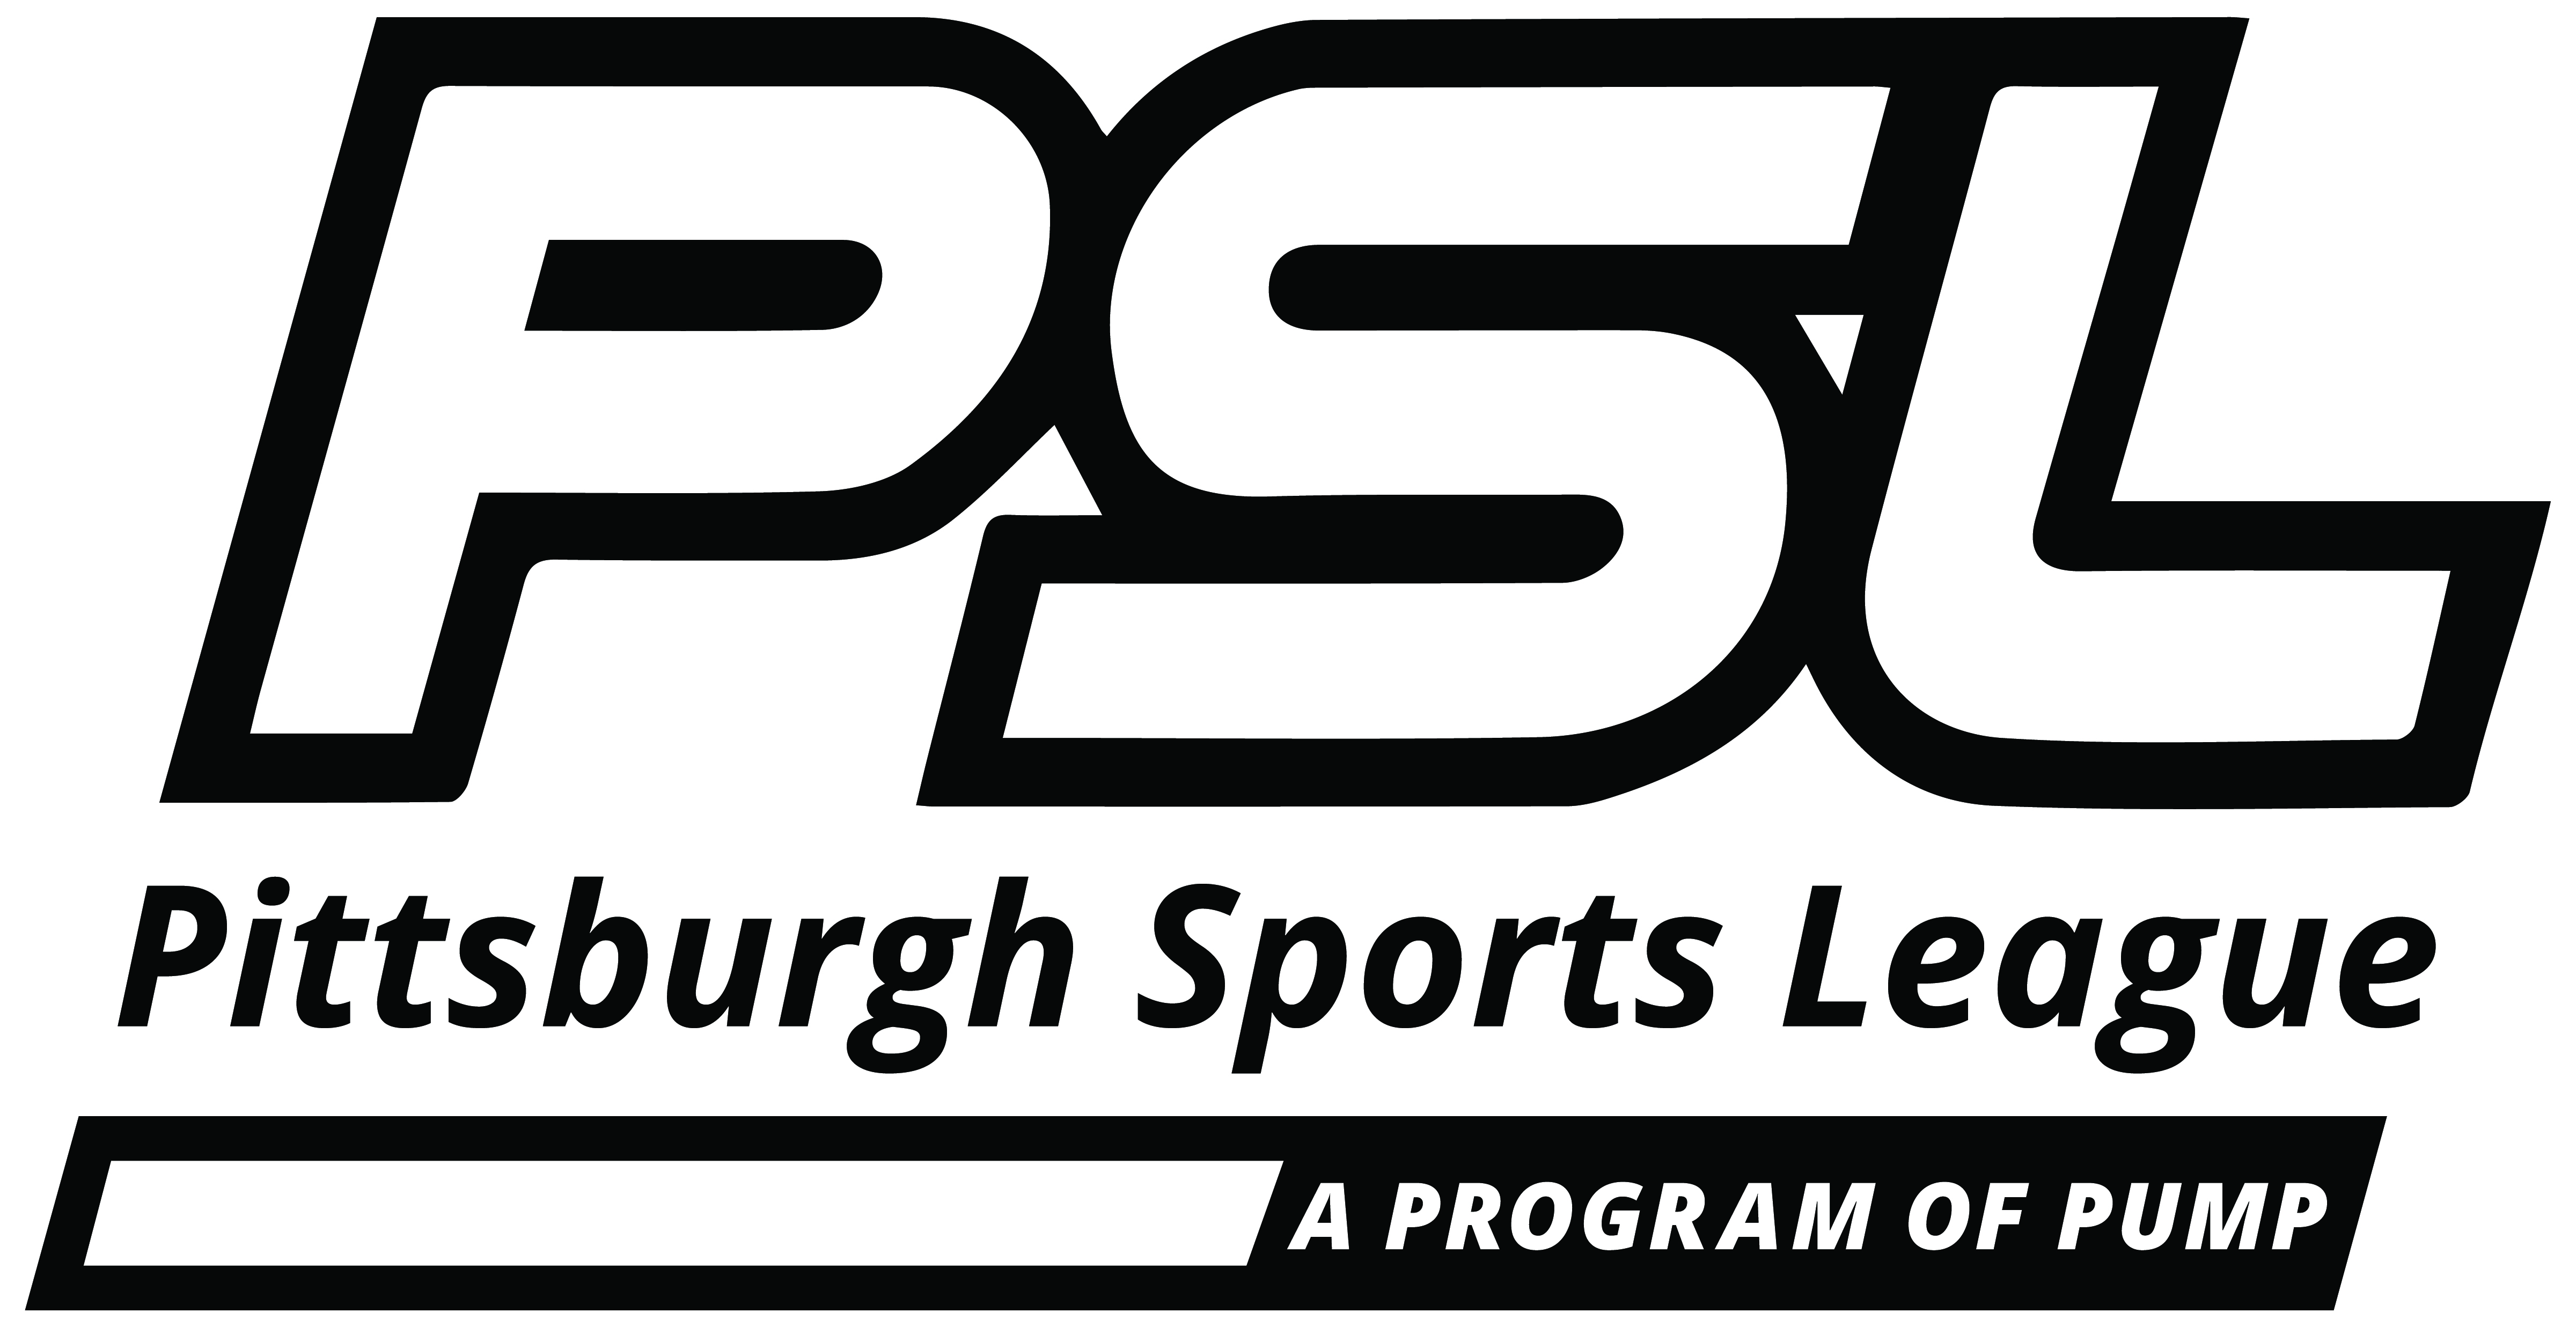 Pittsburgh Sports League Logo